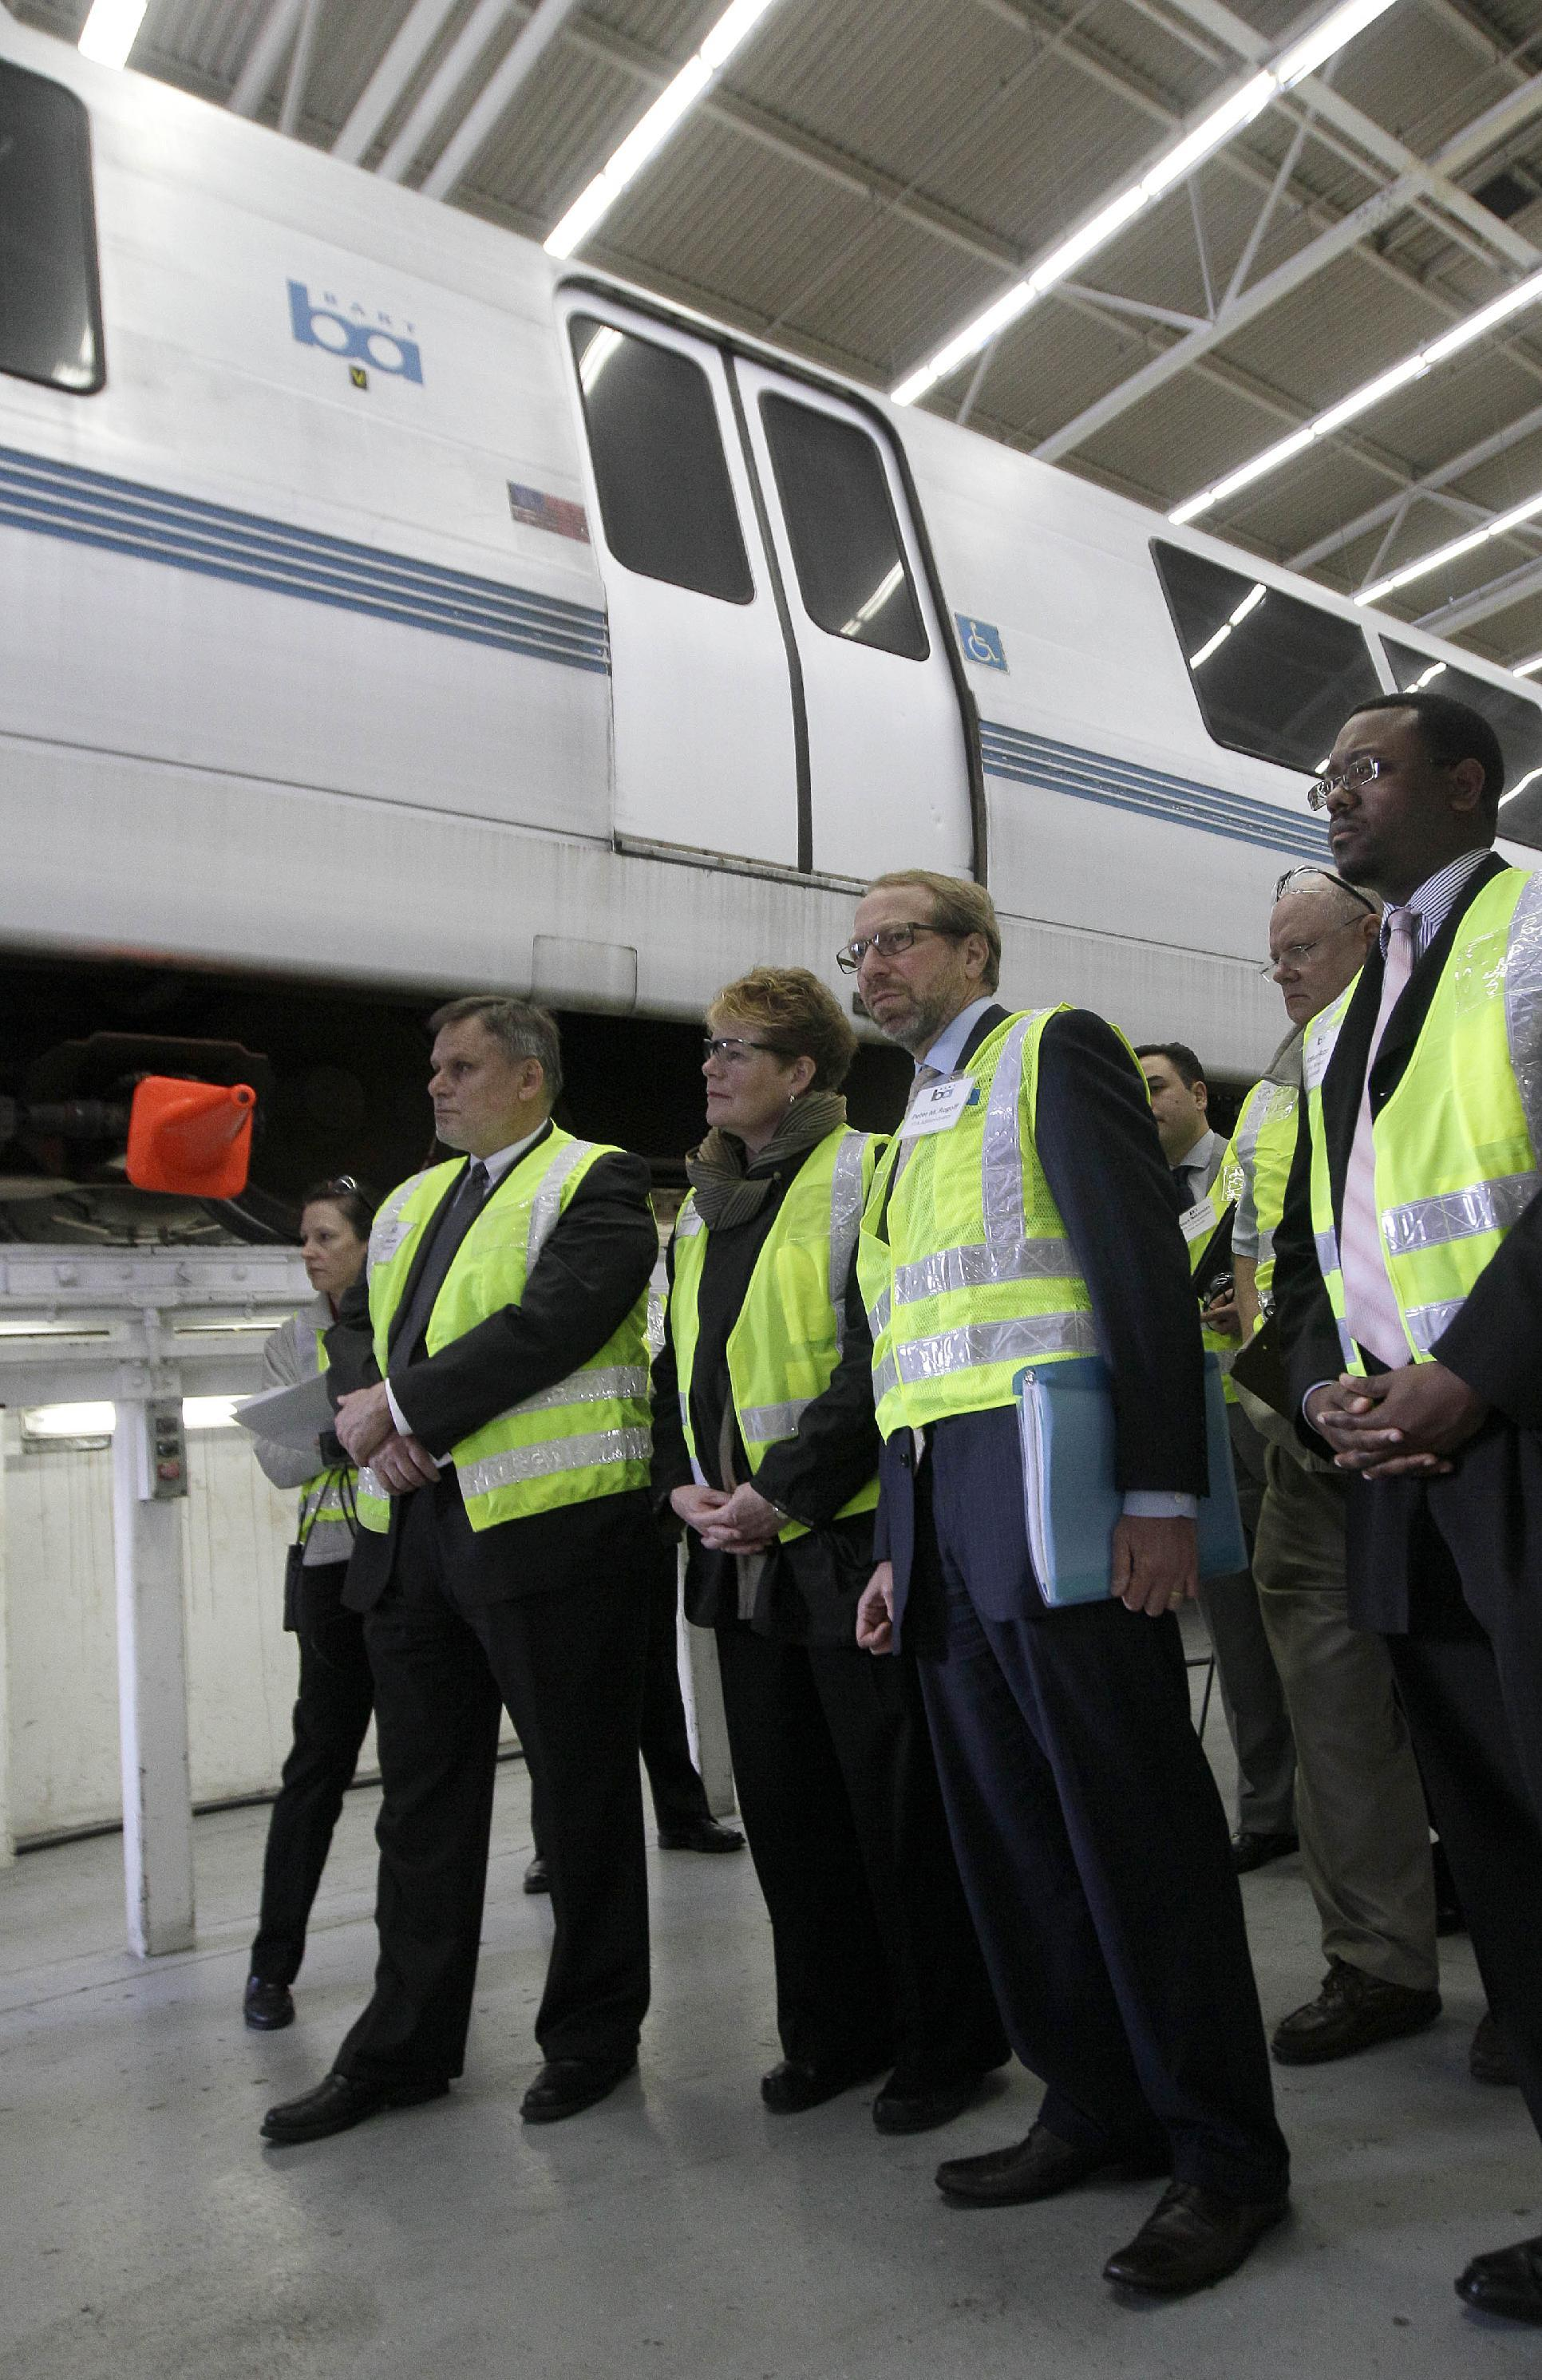 In this photo taken Wednesday, April 11, 2012, Federal Transit Administrator Peter Rogoff, second from right, and Bay Area Rapid Transit (BART) General Manager Grace Crunican, second from left, and others, stand near a BART train during a tour of the BART Maintenance Yard in Hayward, Calif. Driven by high gas prices and an uncertain economy, Americans are turning to trains and buses to get around in greater numbers than ever before. The aging trains and buses they're riding, however, face an $80 billion maintenance backlog that jeopardizes service just when it's most in demand. (AP Photo/Jeff Chiu)